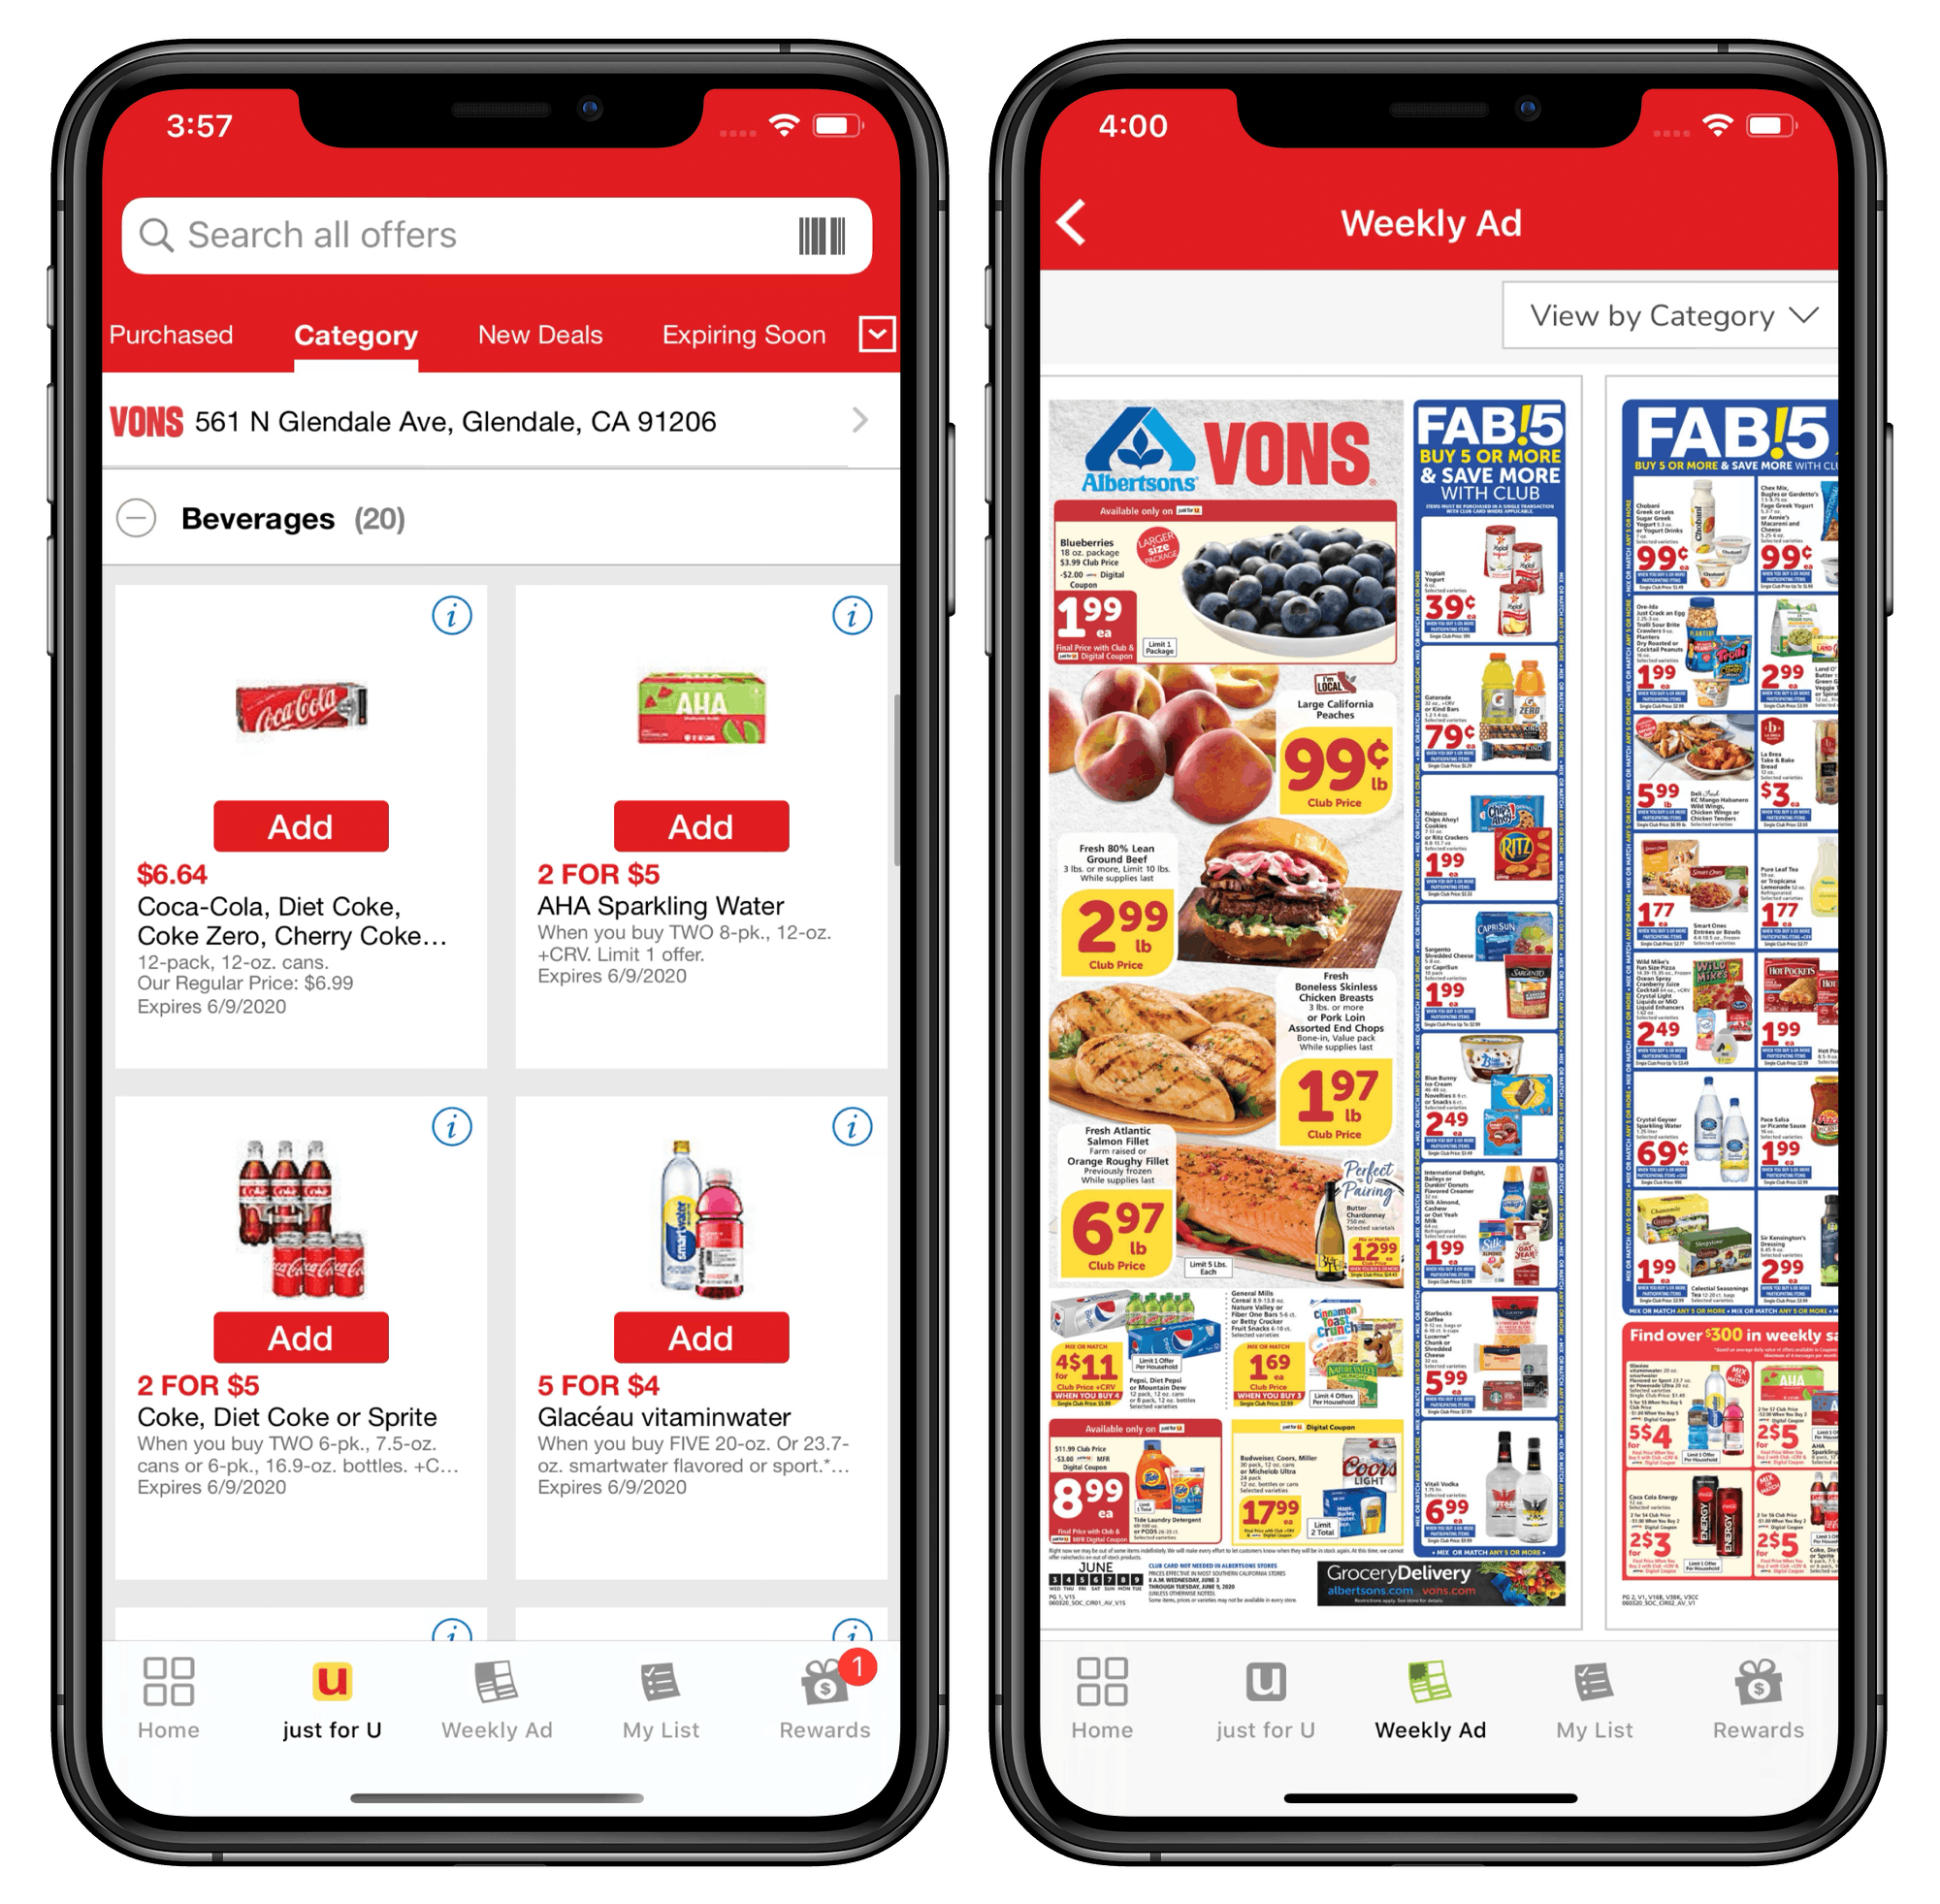 Your Ultimate Guide To Grocery Store App Digital Coupons The Krazy Coupon Lady